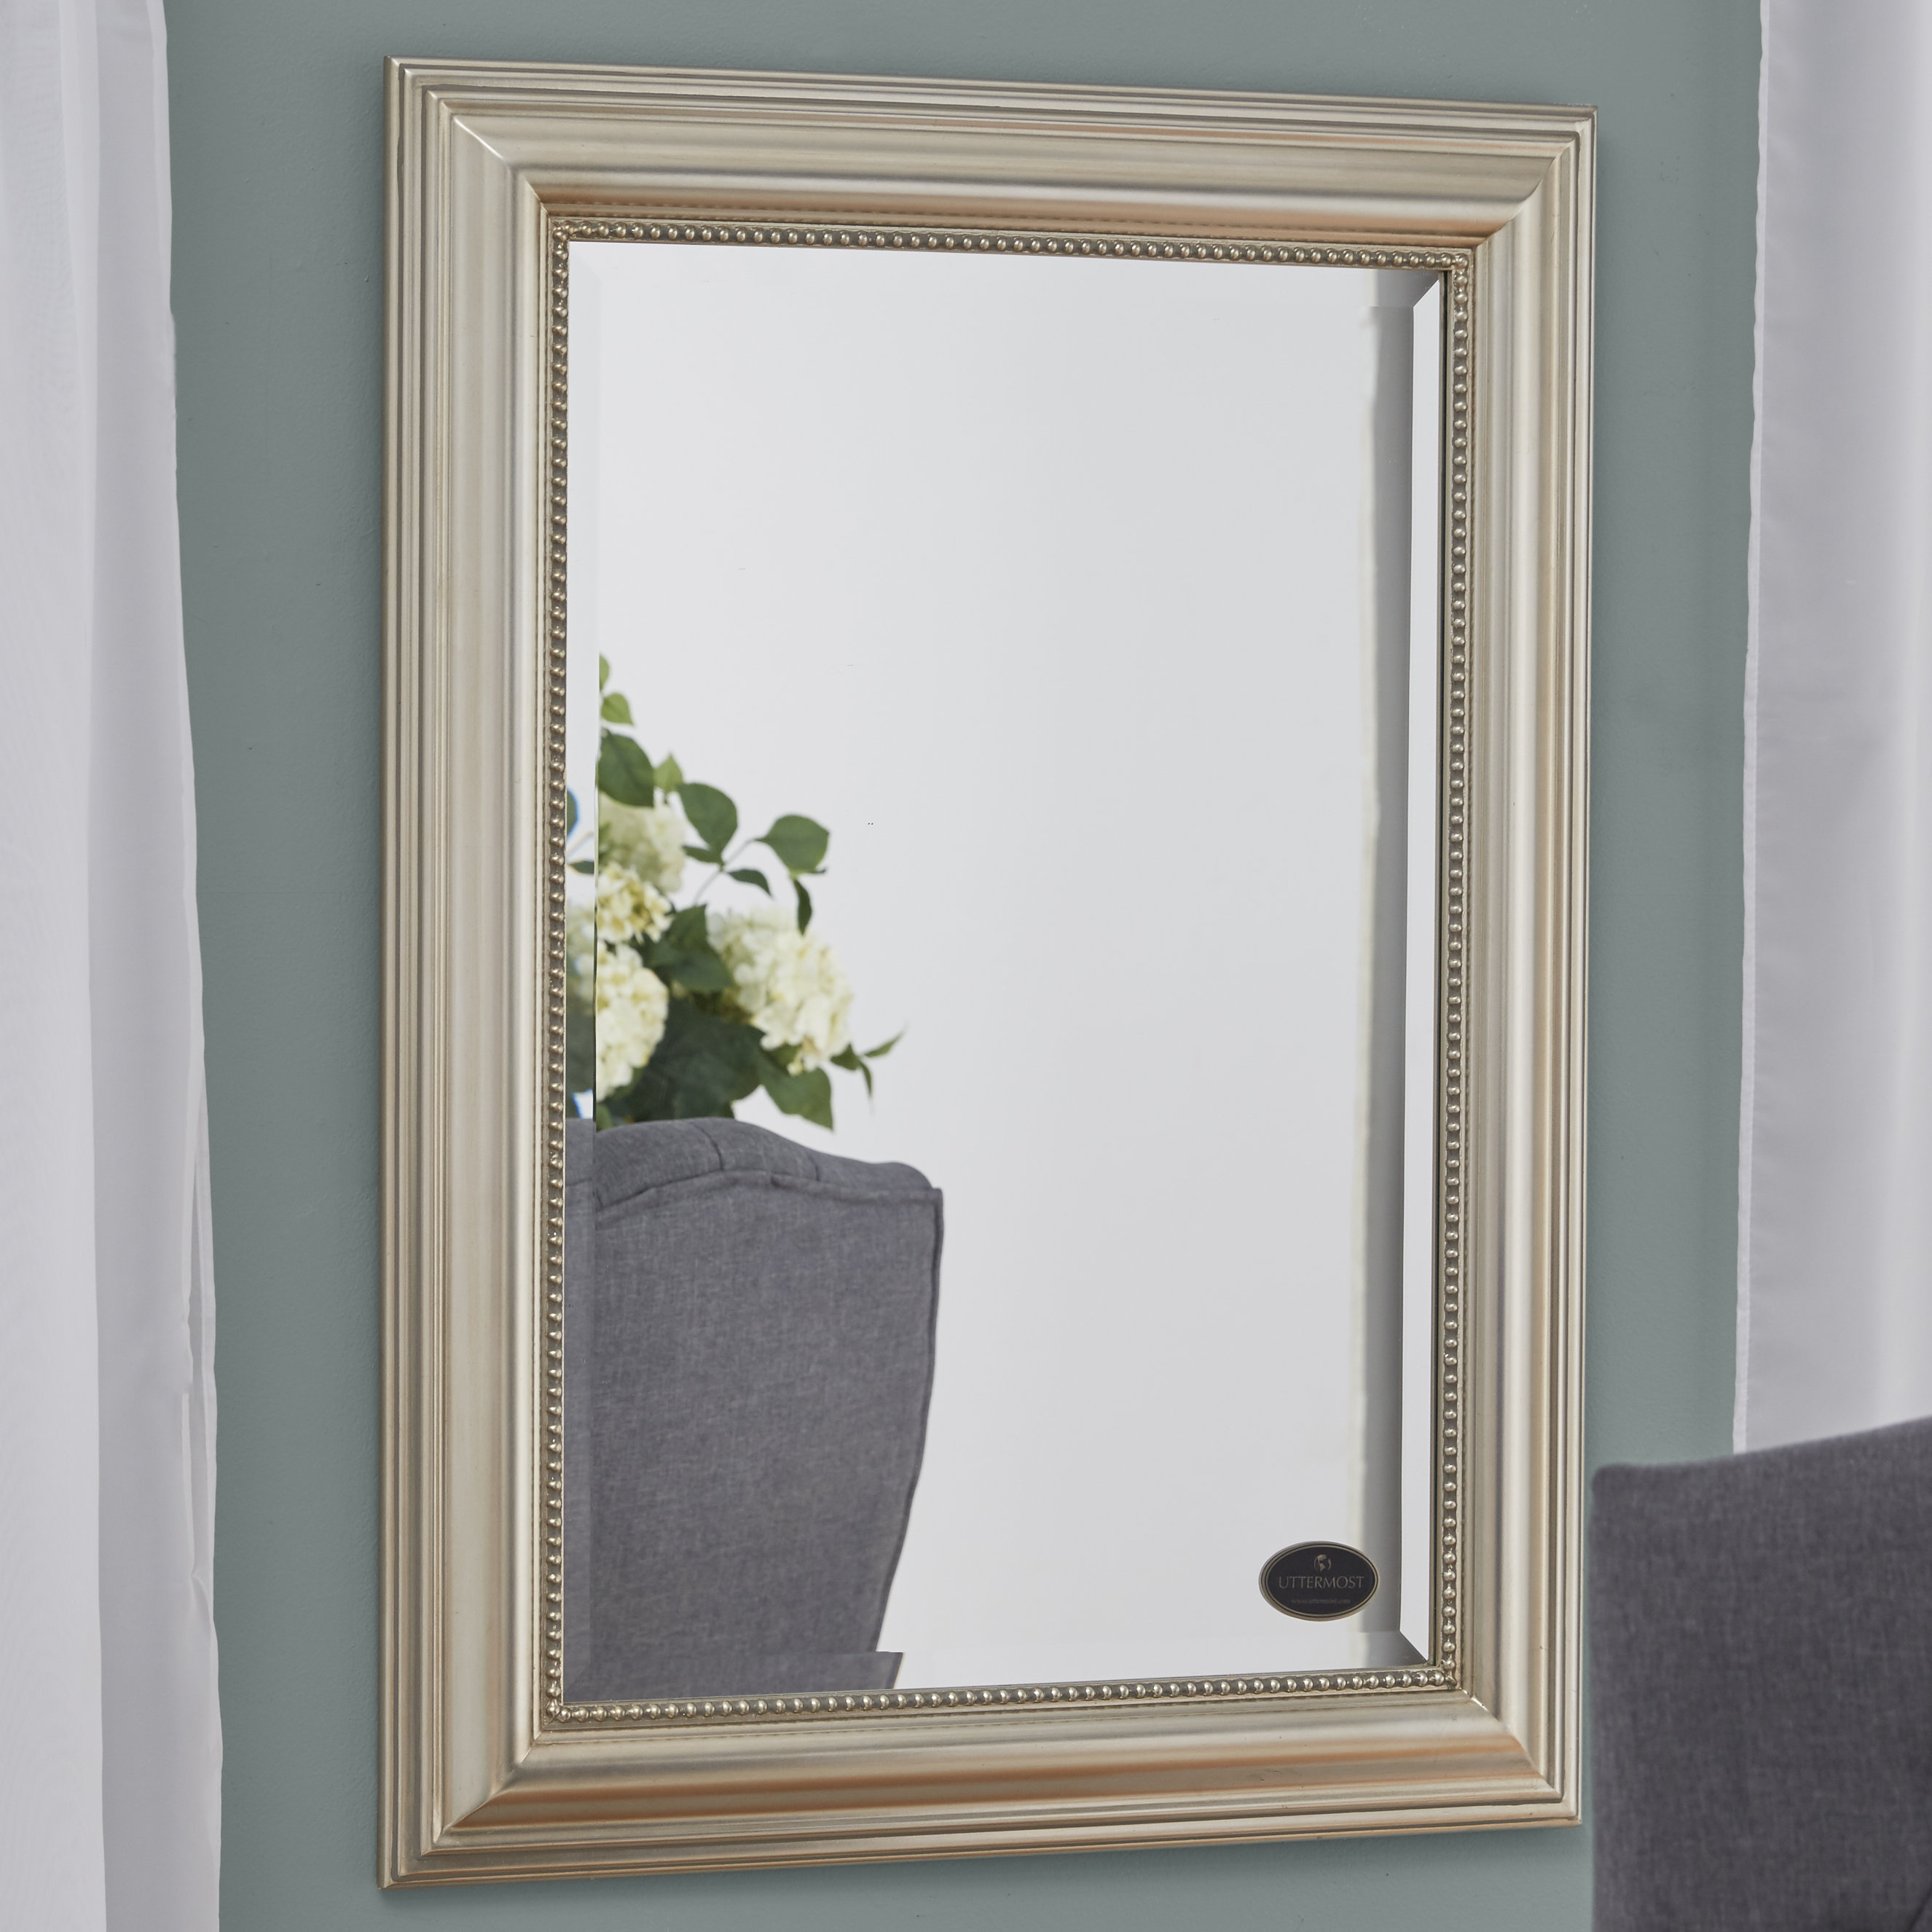 Owens Accent Mirror With Dedrick Decorative Framed Modern And Contemporary Wall Mirrors (View 13 of 20)